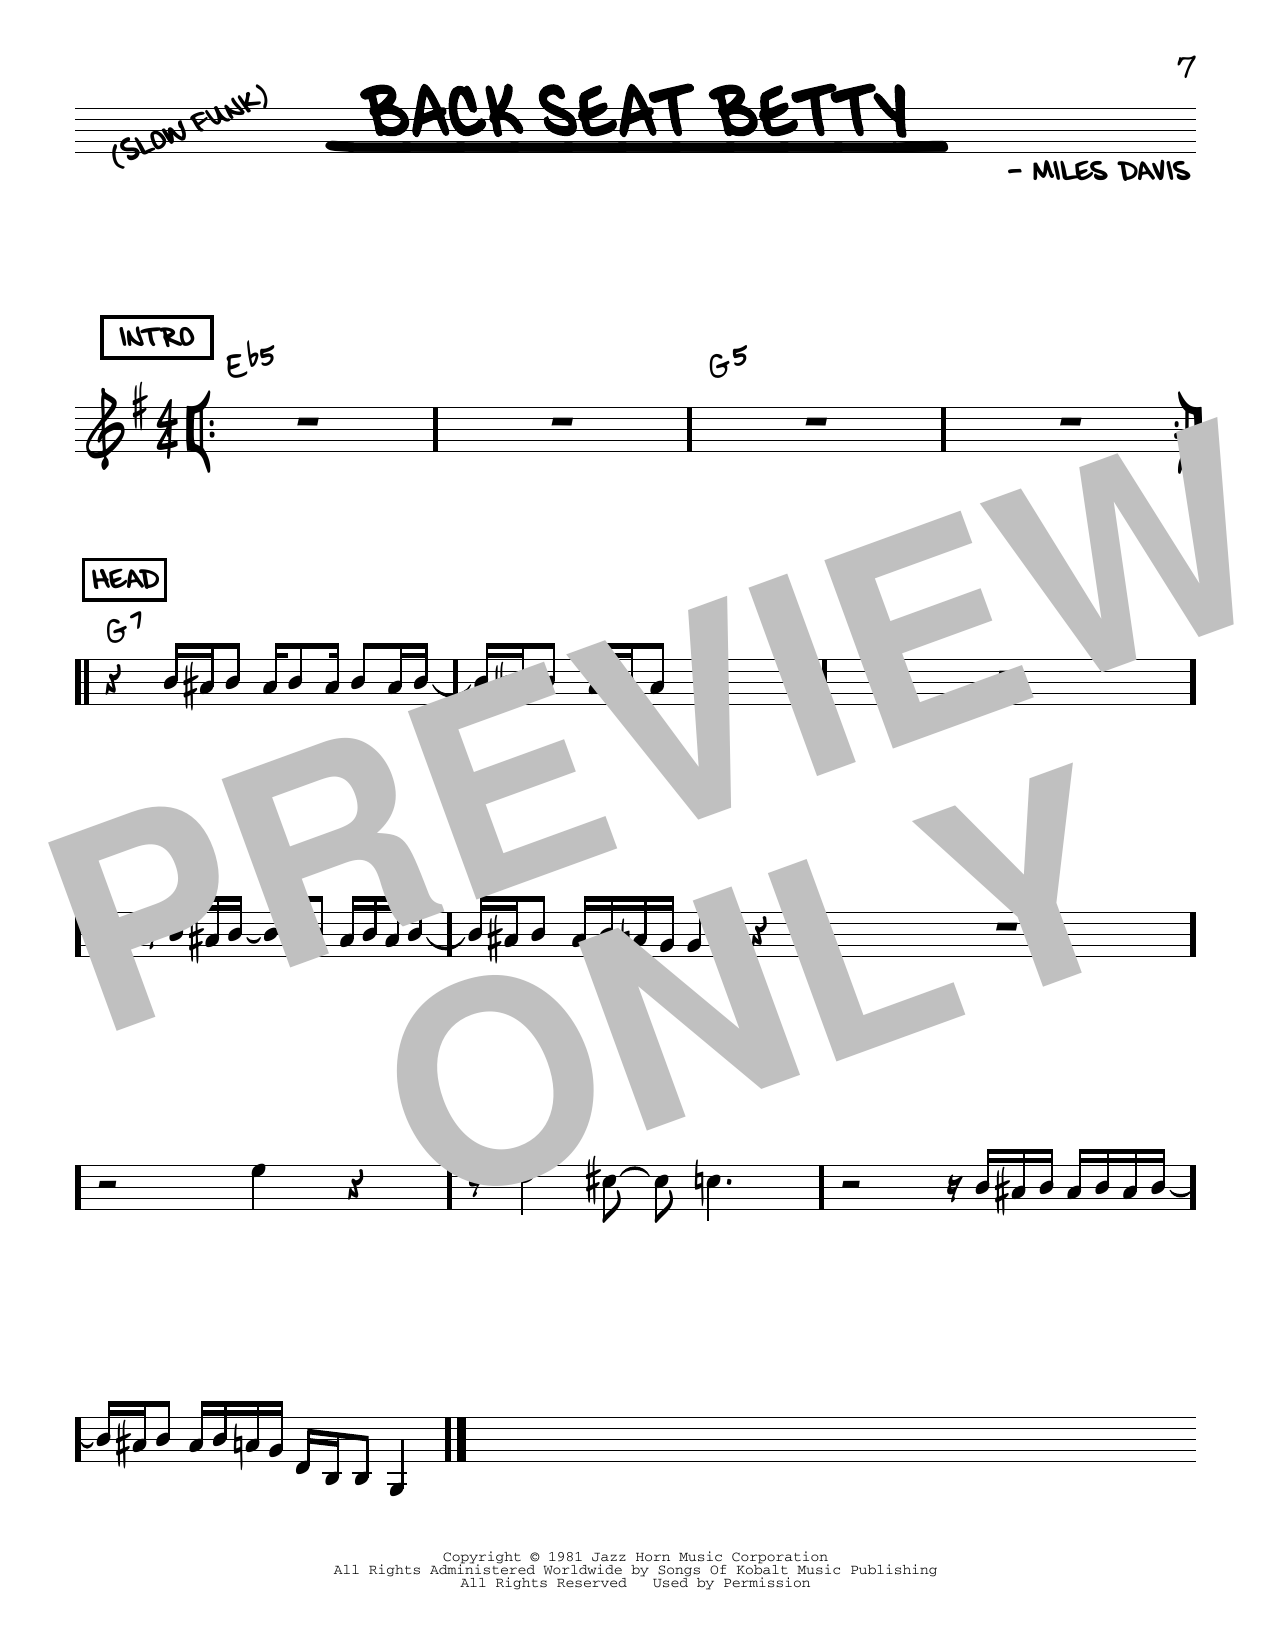 Miles Davis Back Seat Betty sheet music notes and chords. Download Printable PDF.